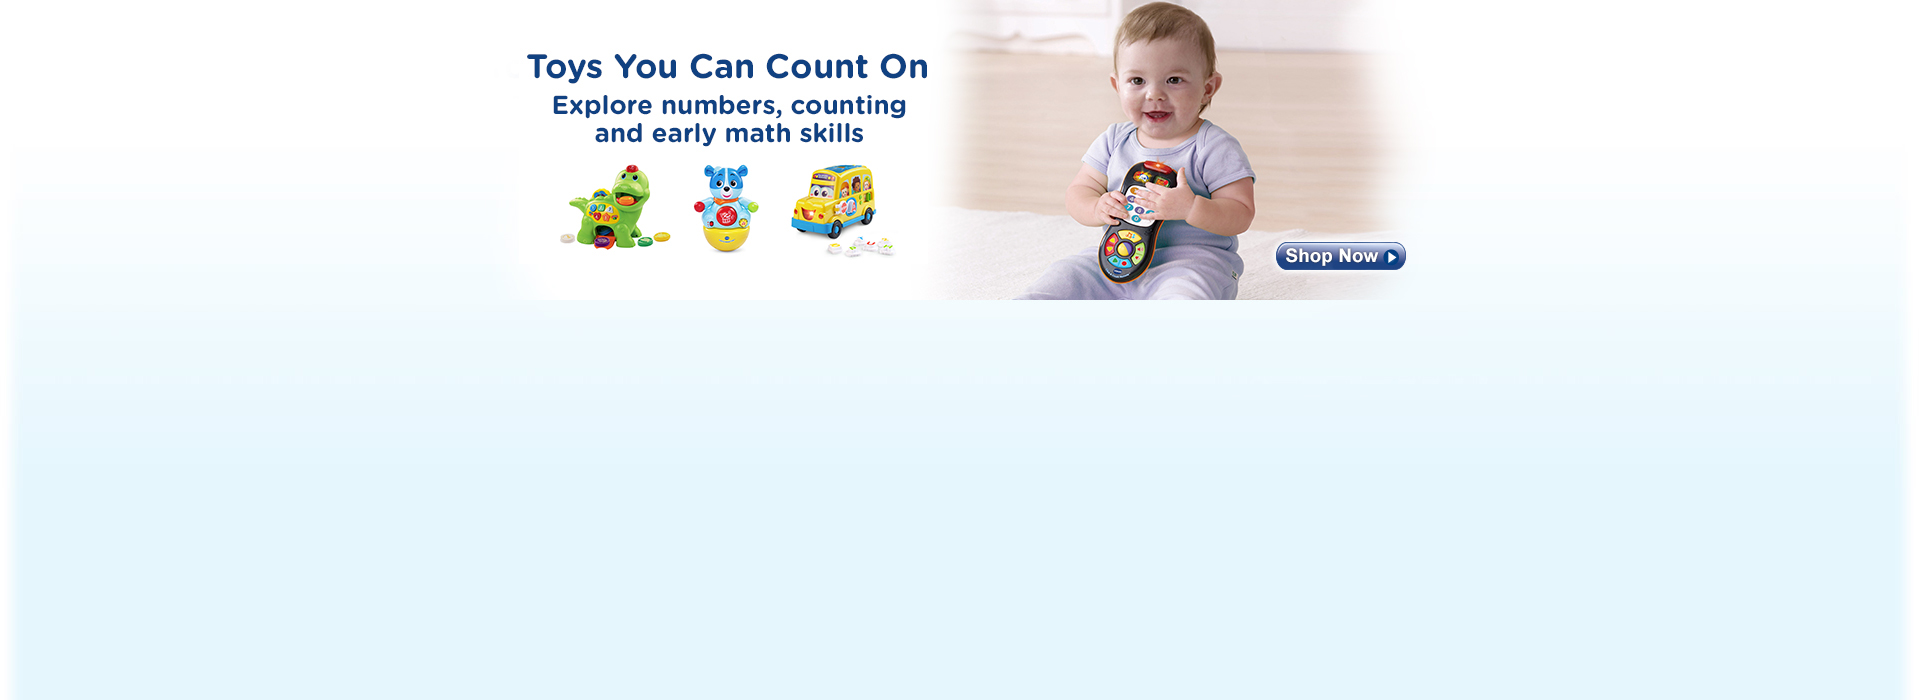 Toys You Can Count On Explore numbers, counting and early math skills